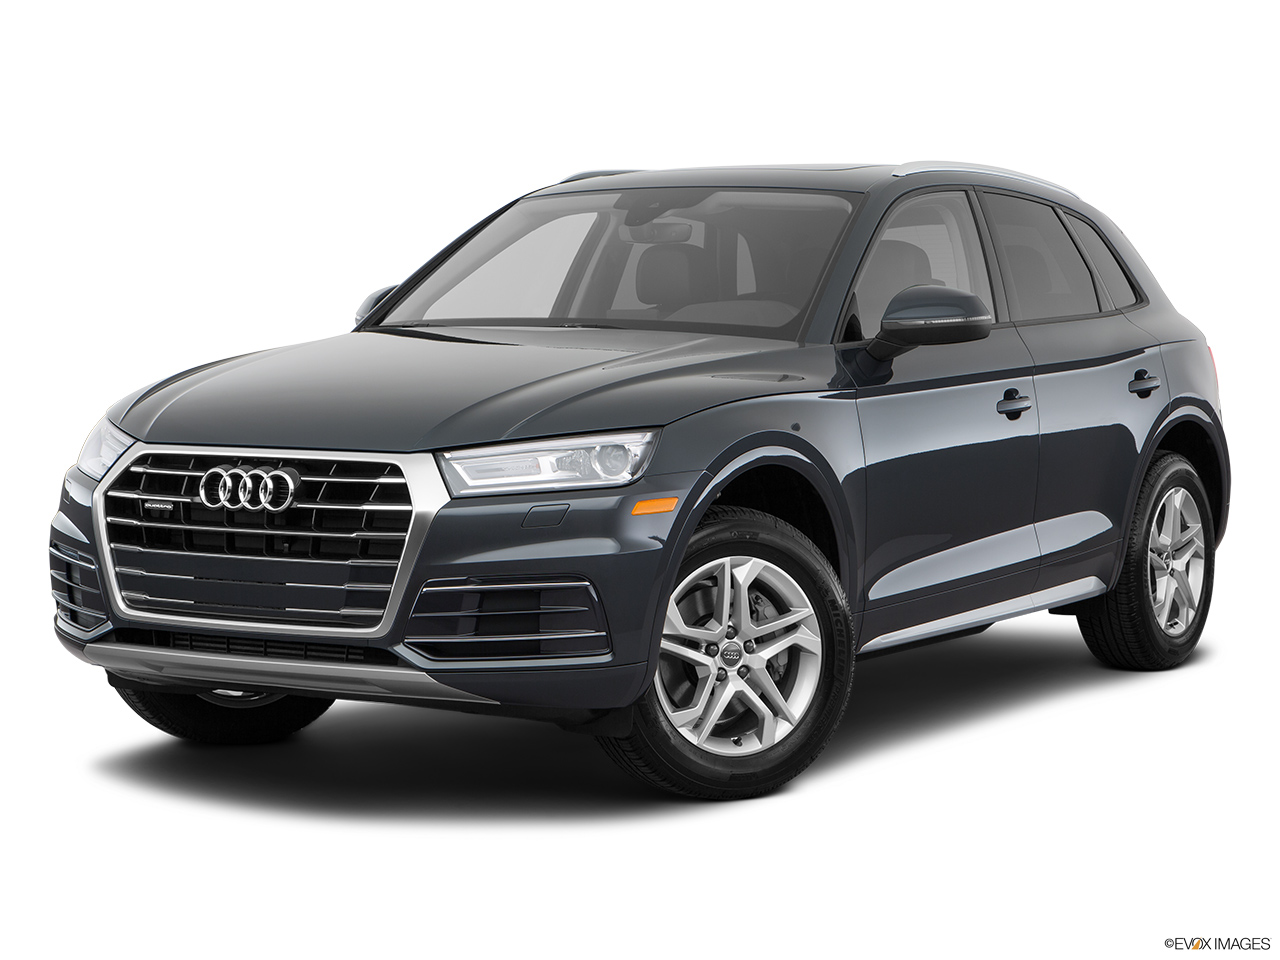 car features list for audi q5 2018 2 0 tfsi basic uae yallamotor. Black Bedroom Furniture Sets. Home Design Ideas